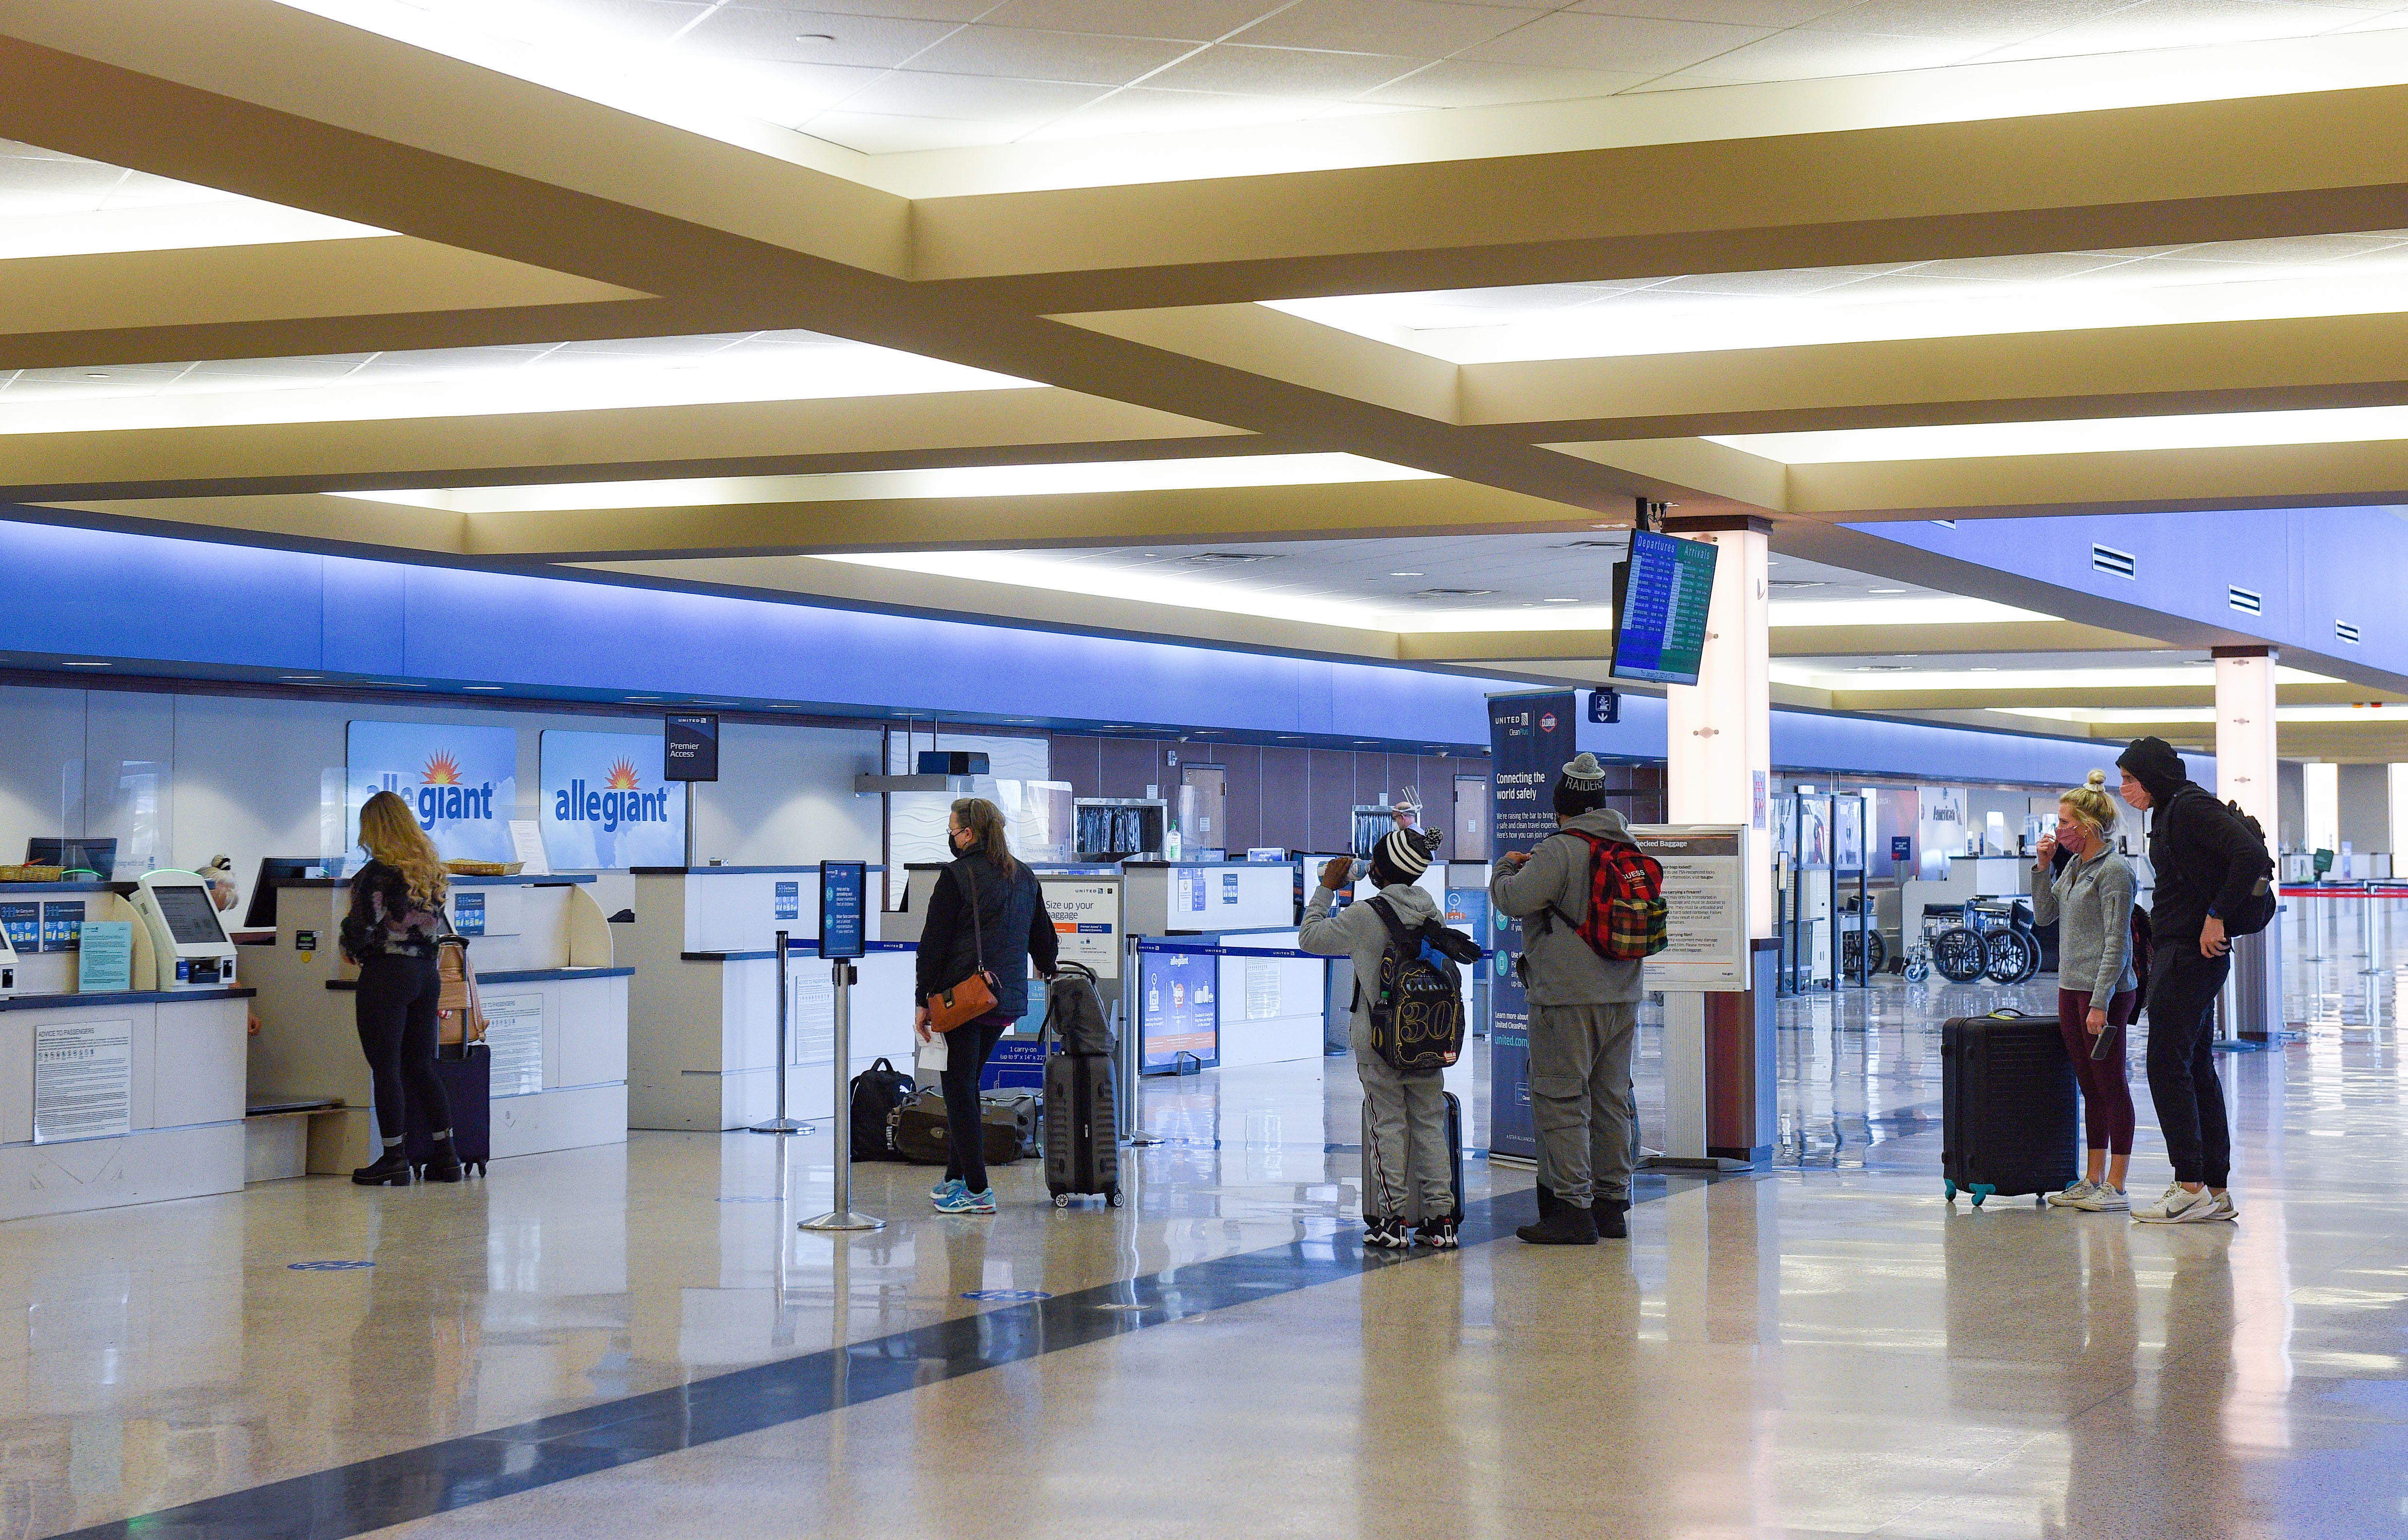 COVID-19 dropped Sioux Falls Regional Airport passengers by nearly 50% in 2020